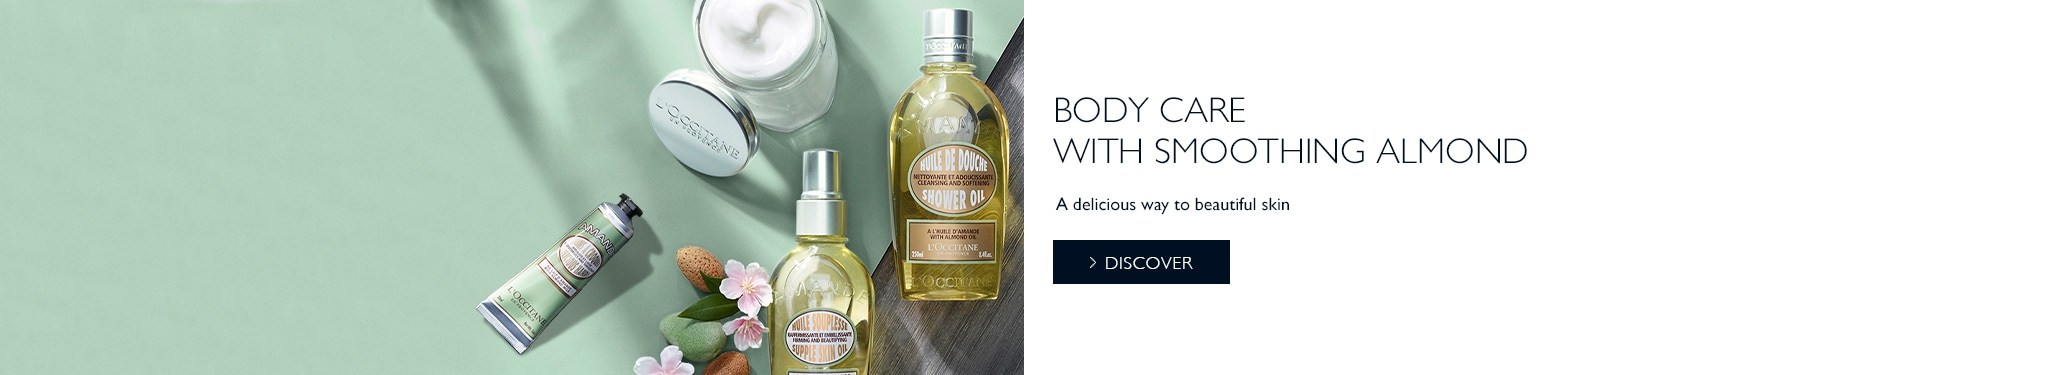 Body care with smoothing almond